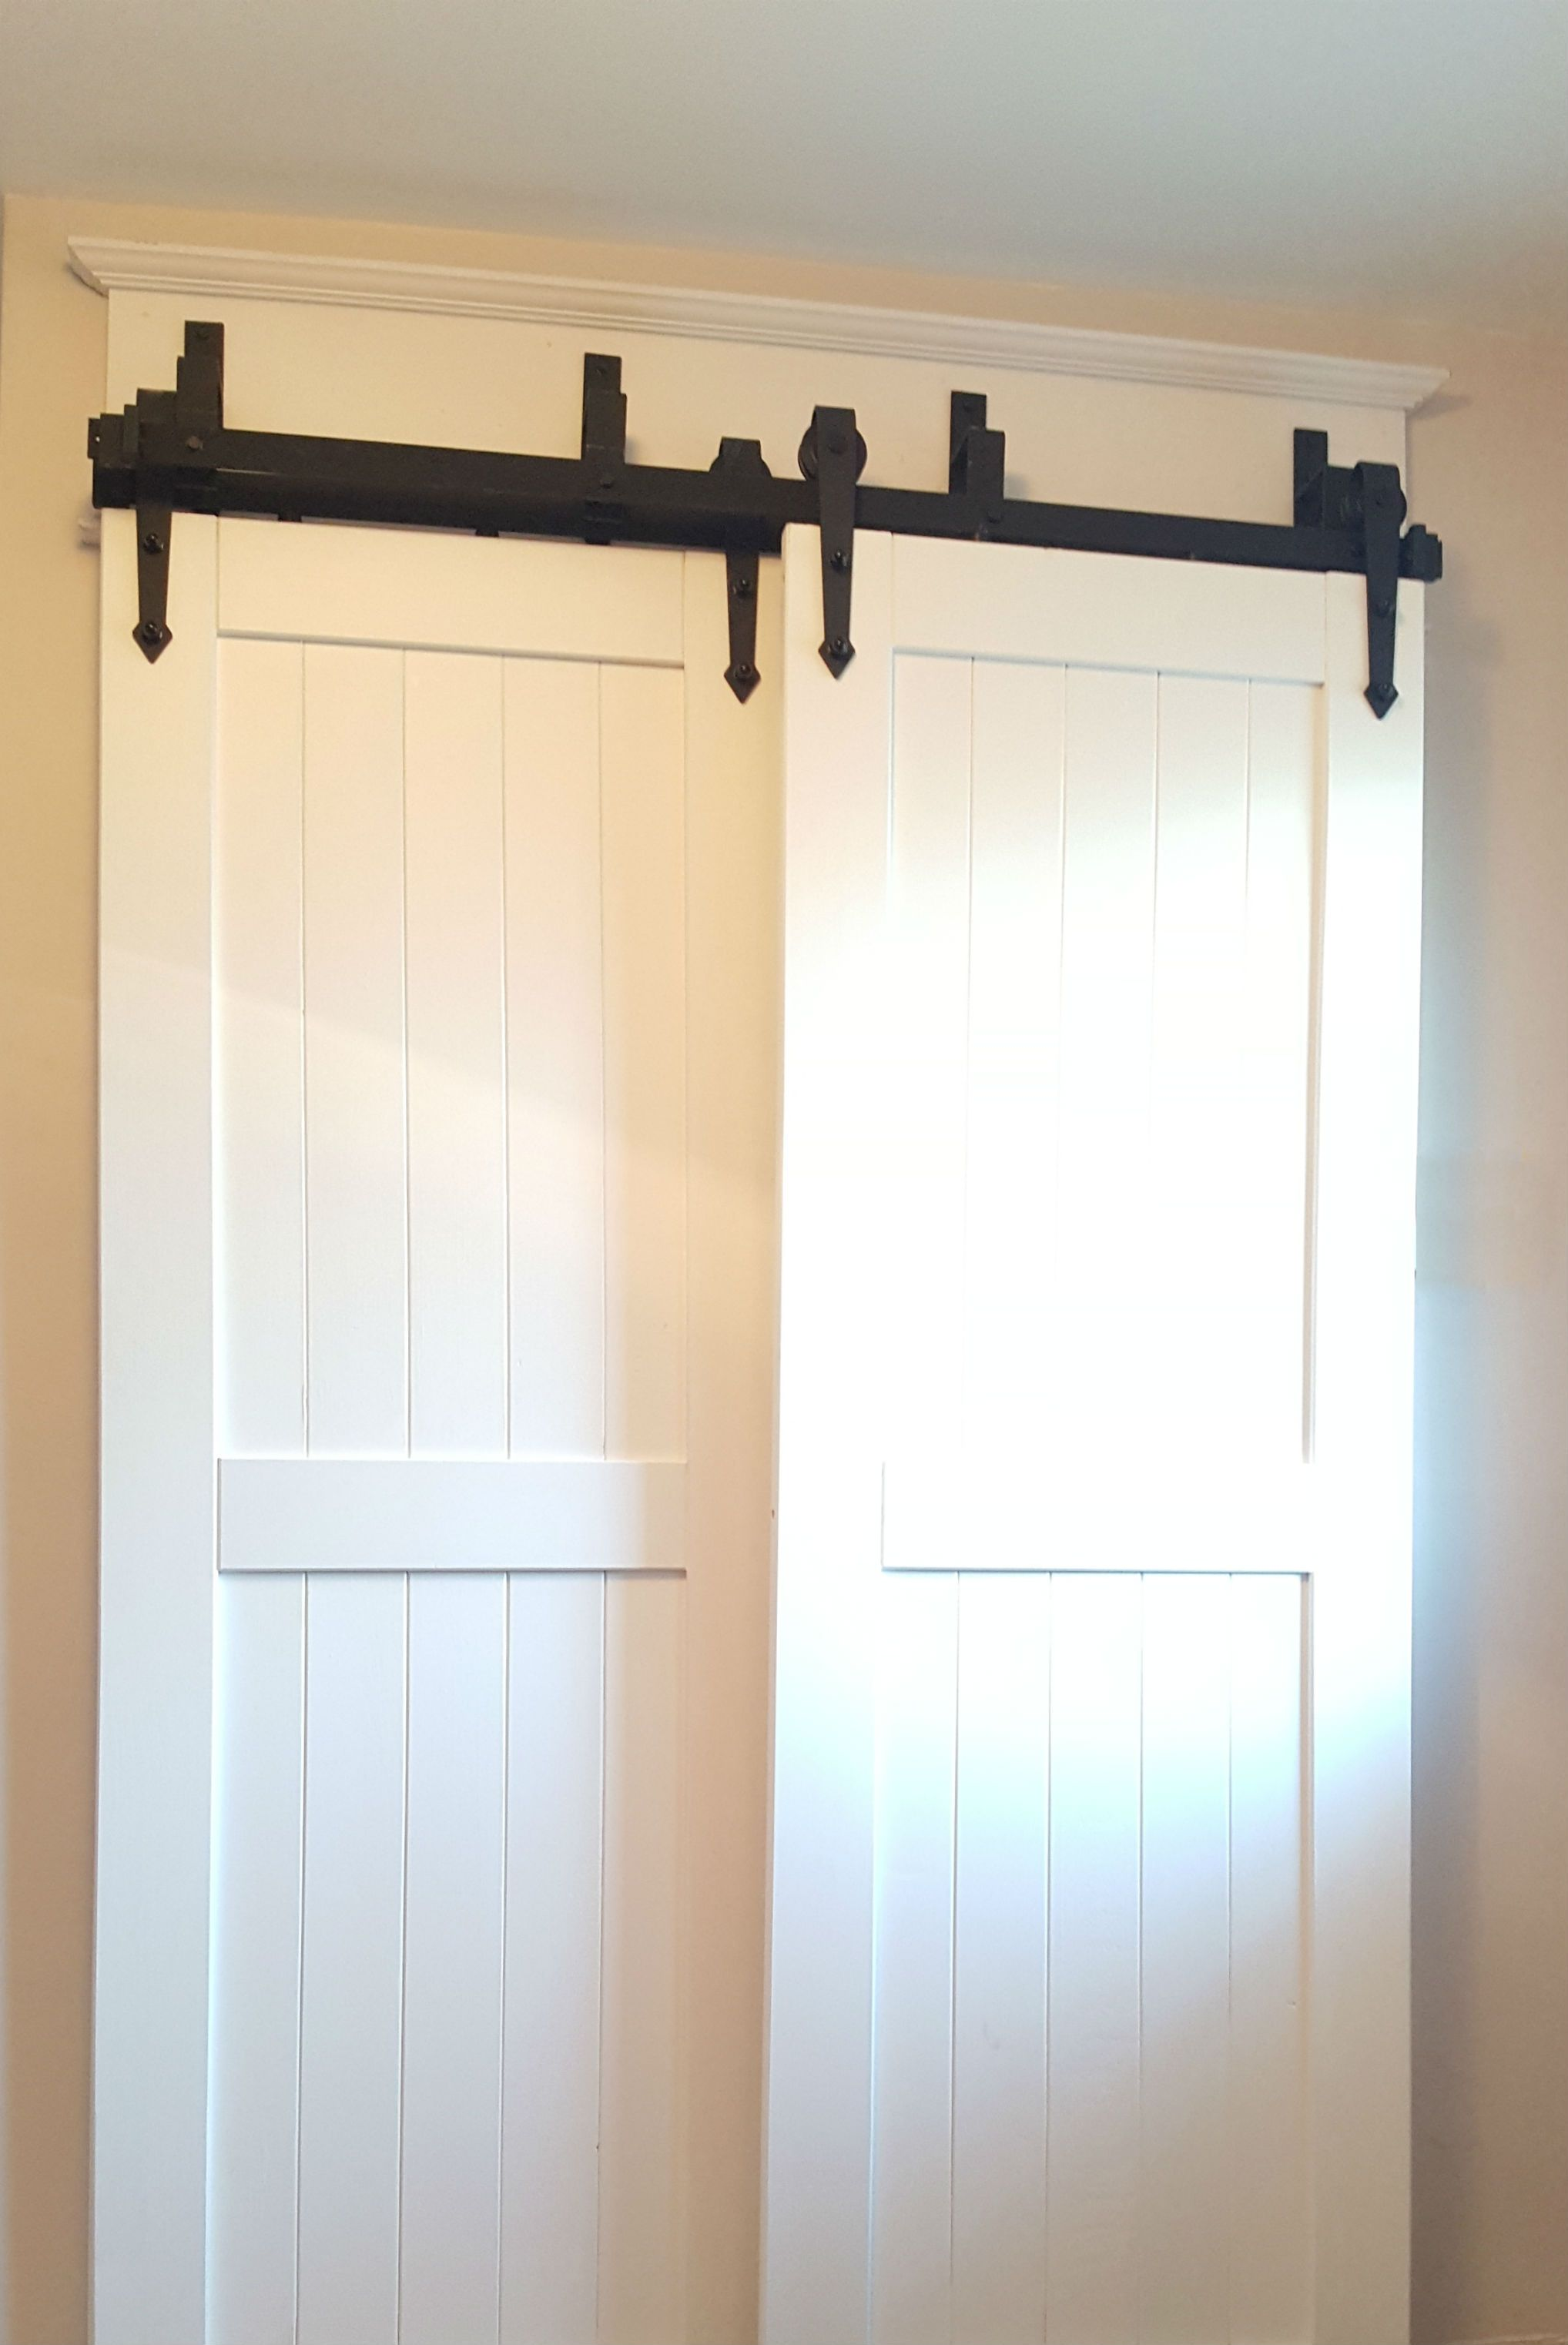 Bypass Barn Door Hardware Easy To Install Canada Bypass Barn